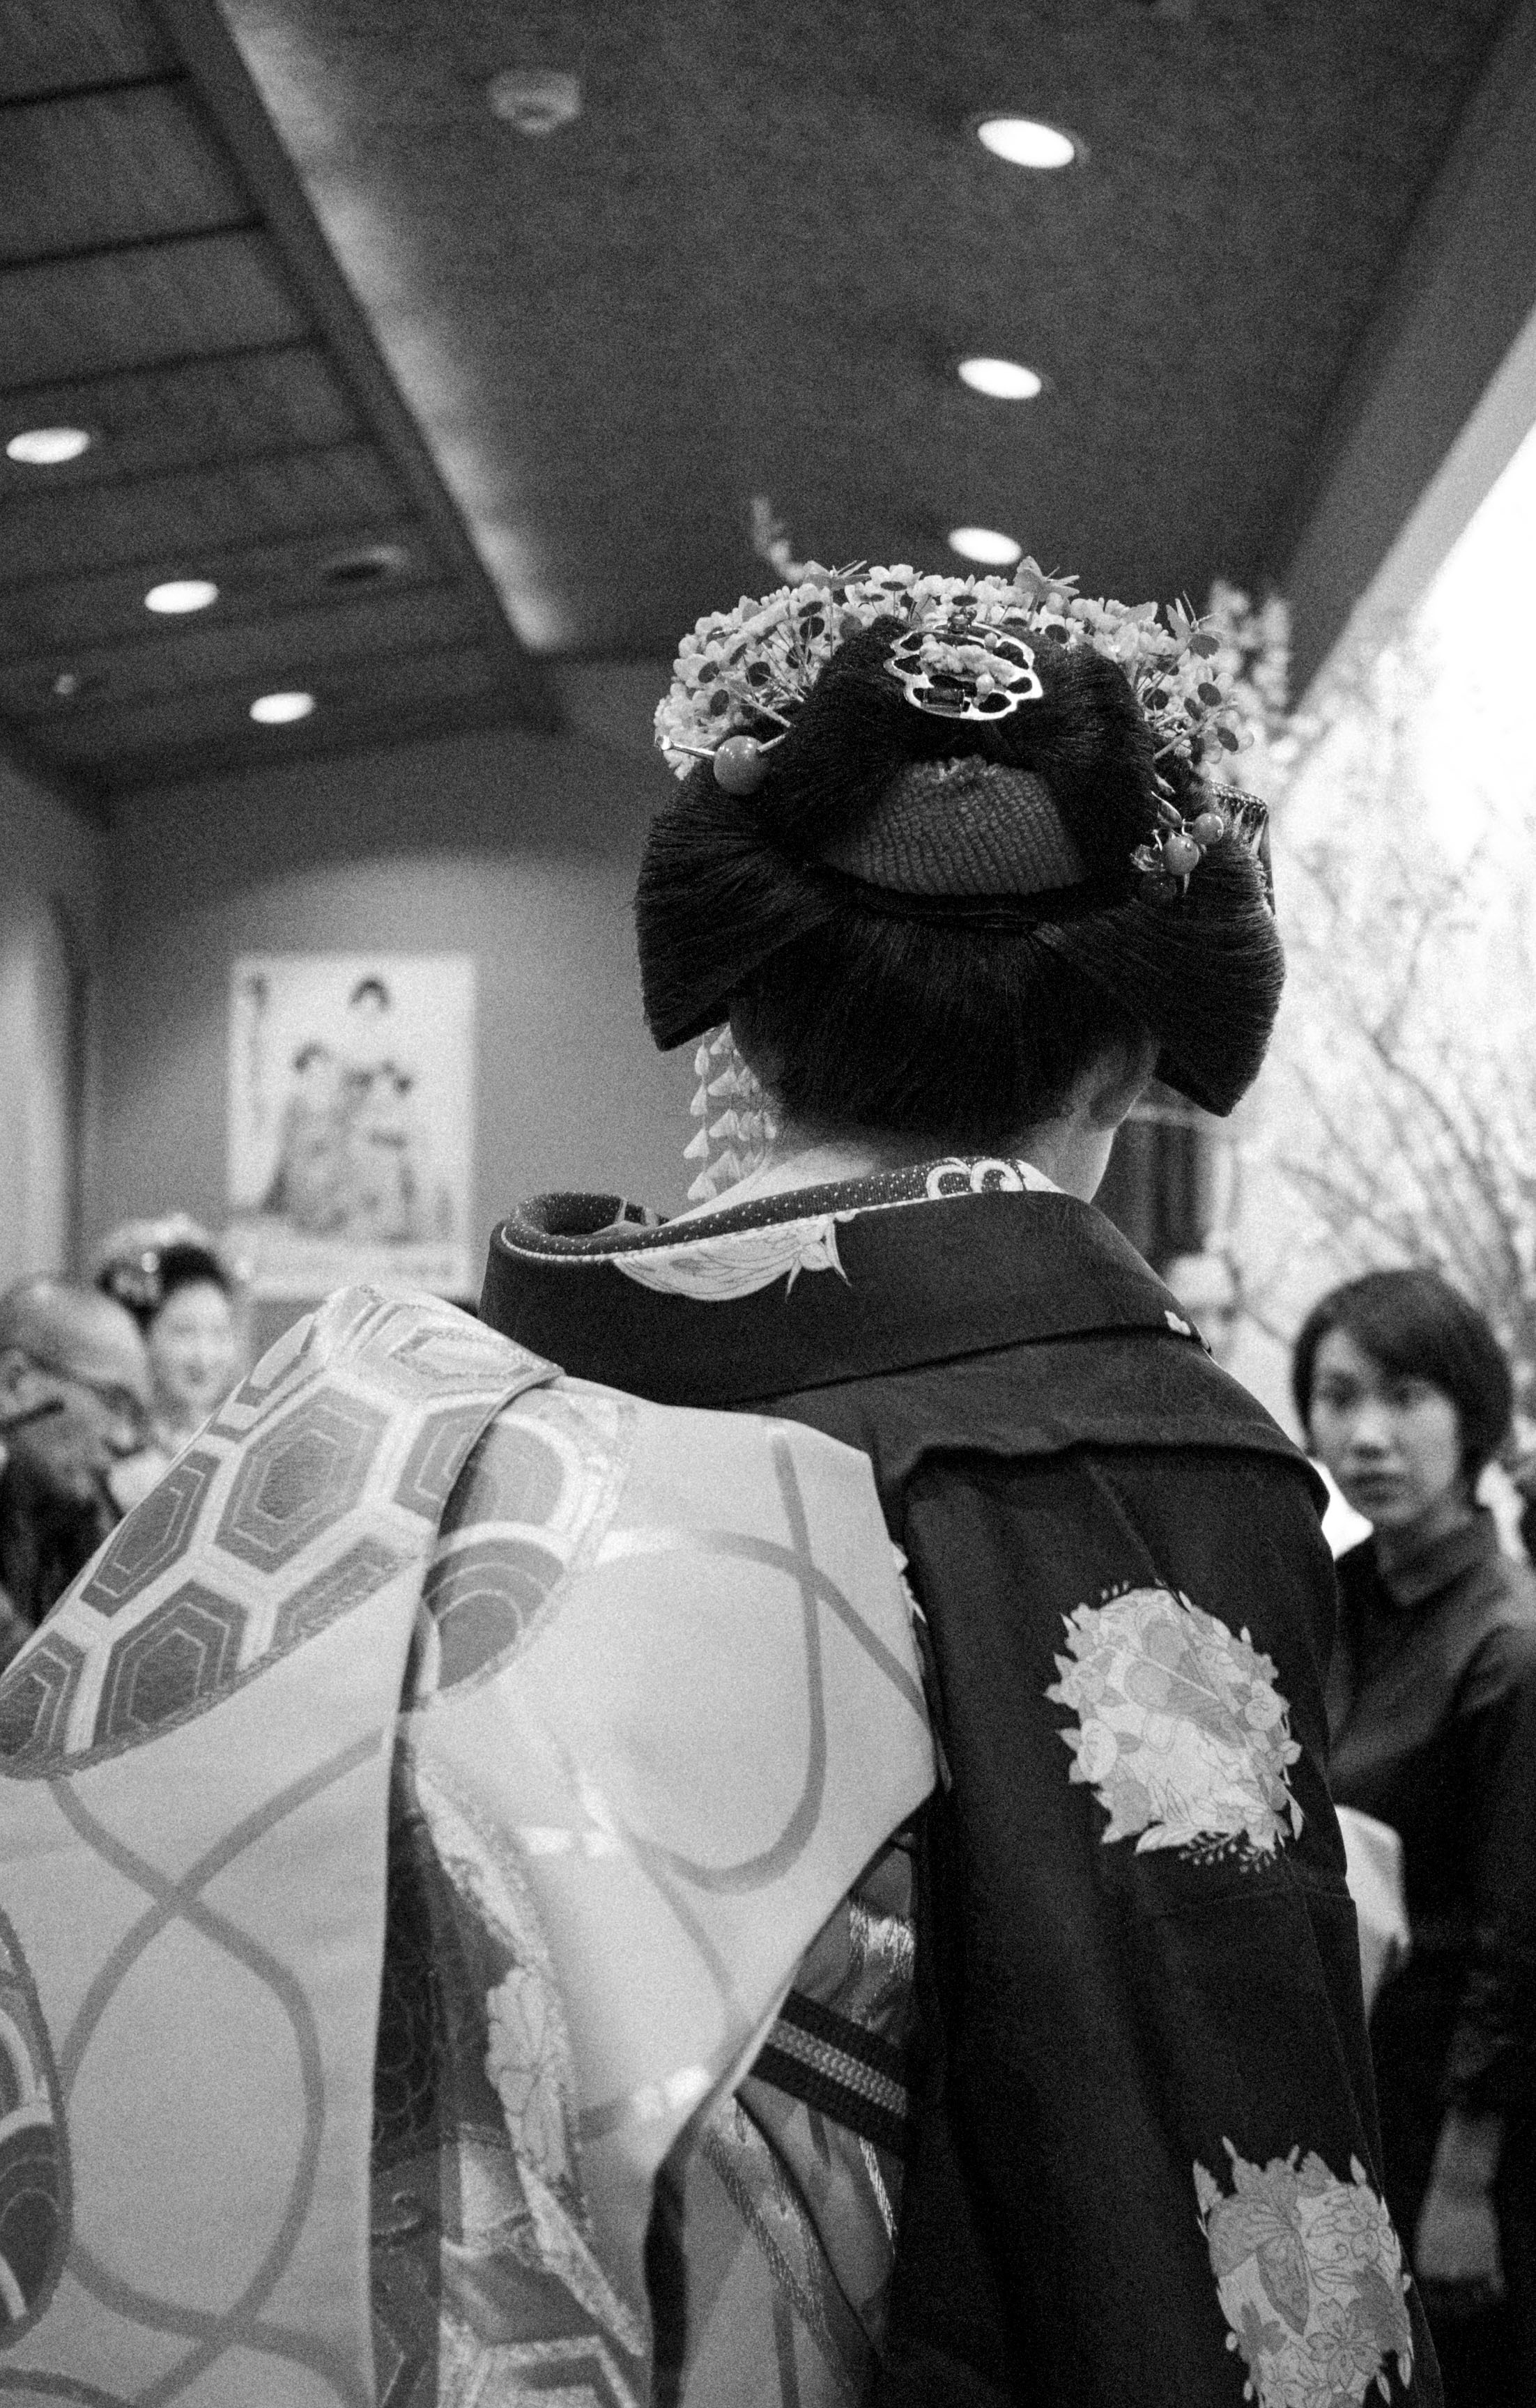 Meeting a real Geisha at a Ichiriki Chaya